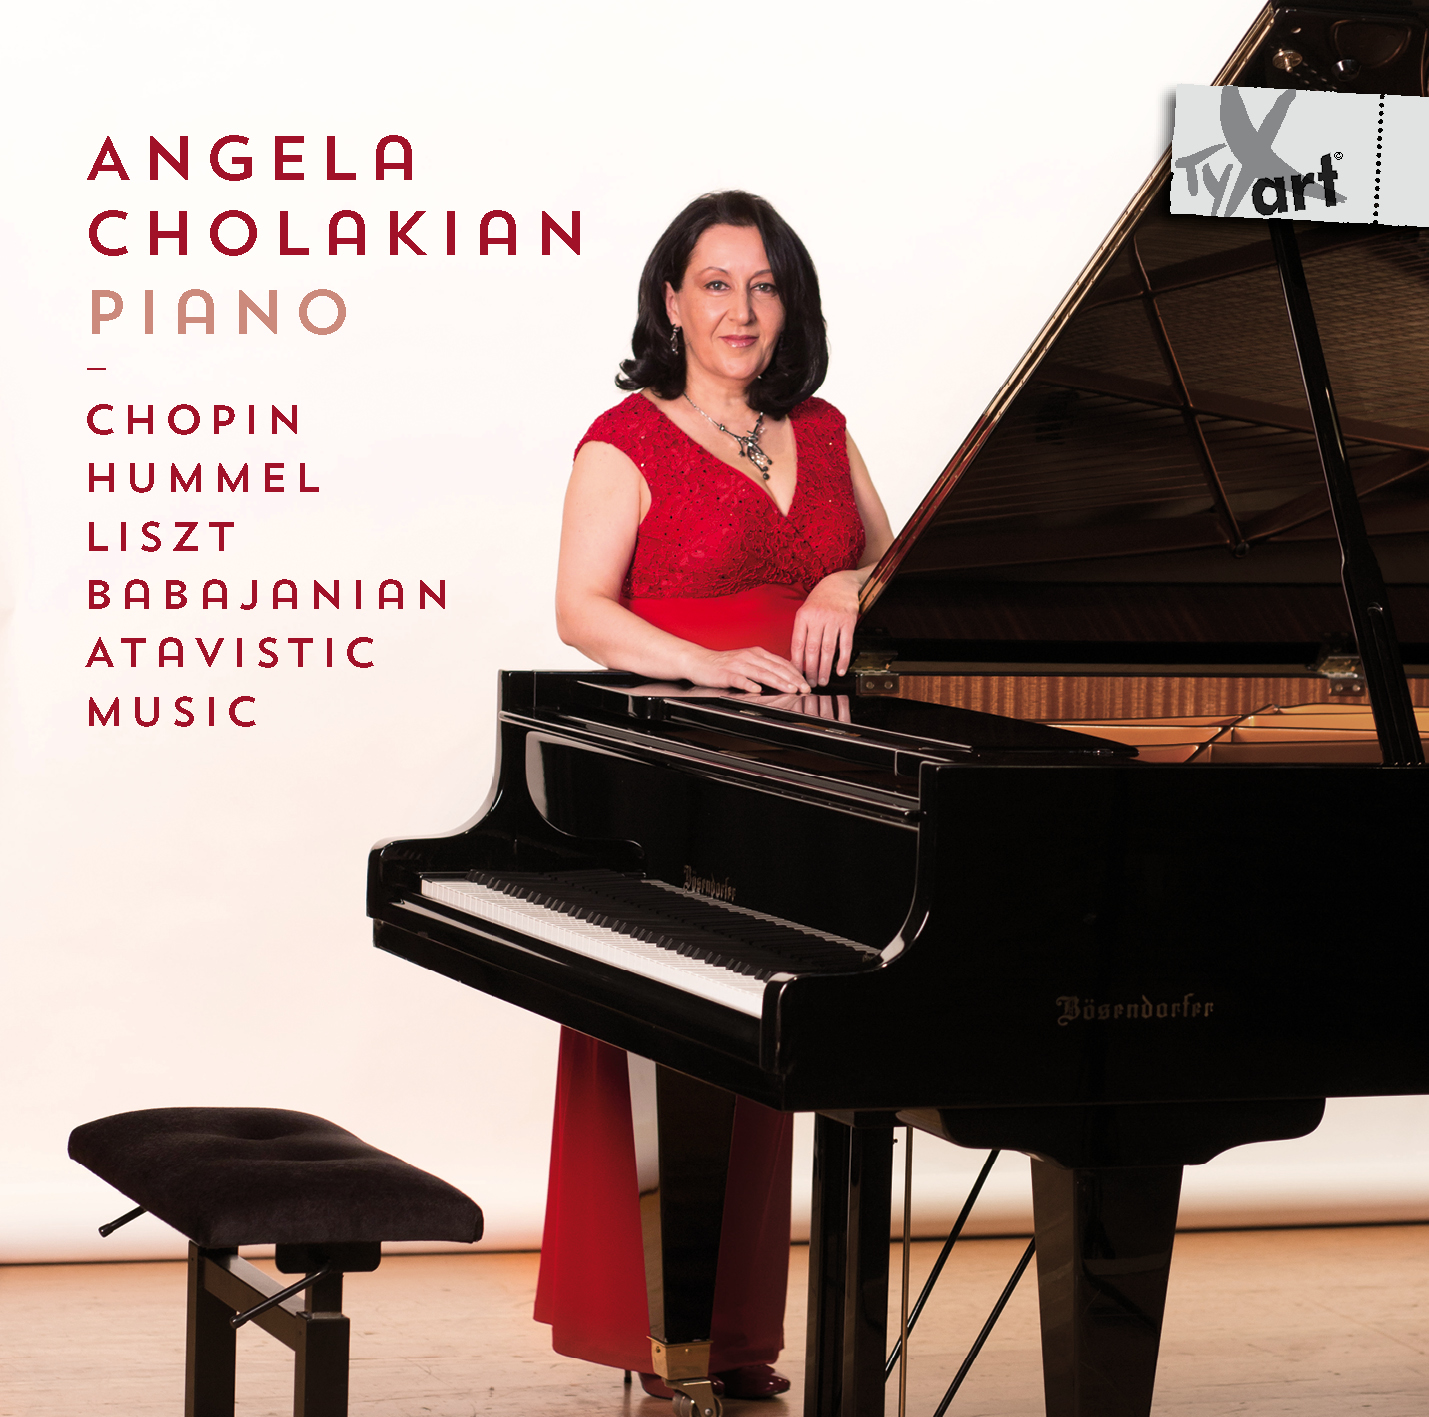 Angela Cholakian, Piano: Babajanian, Chopin, Liszt, Hummel, and Atavistic Music